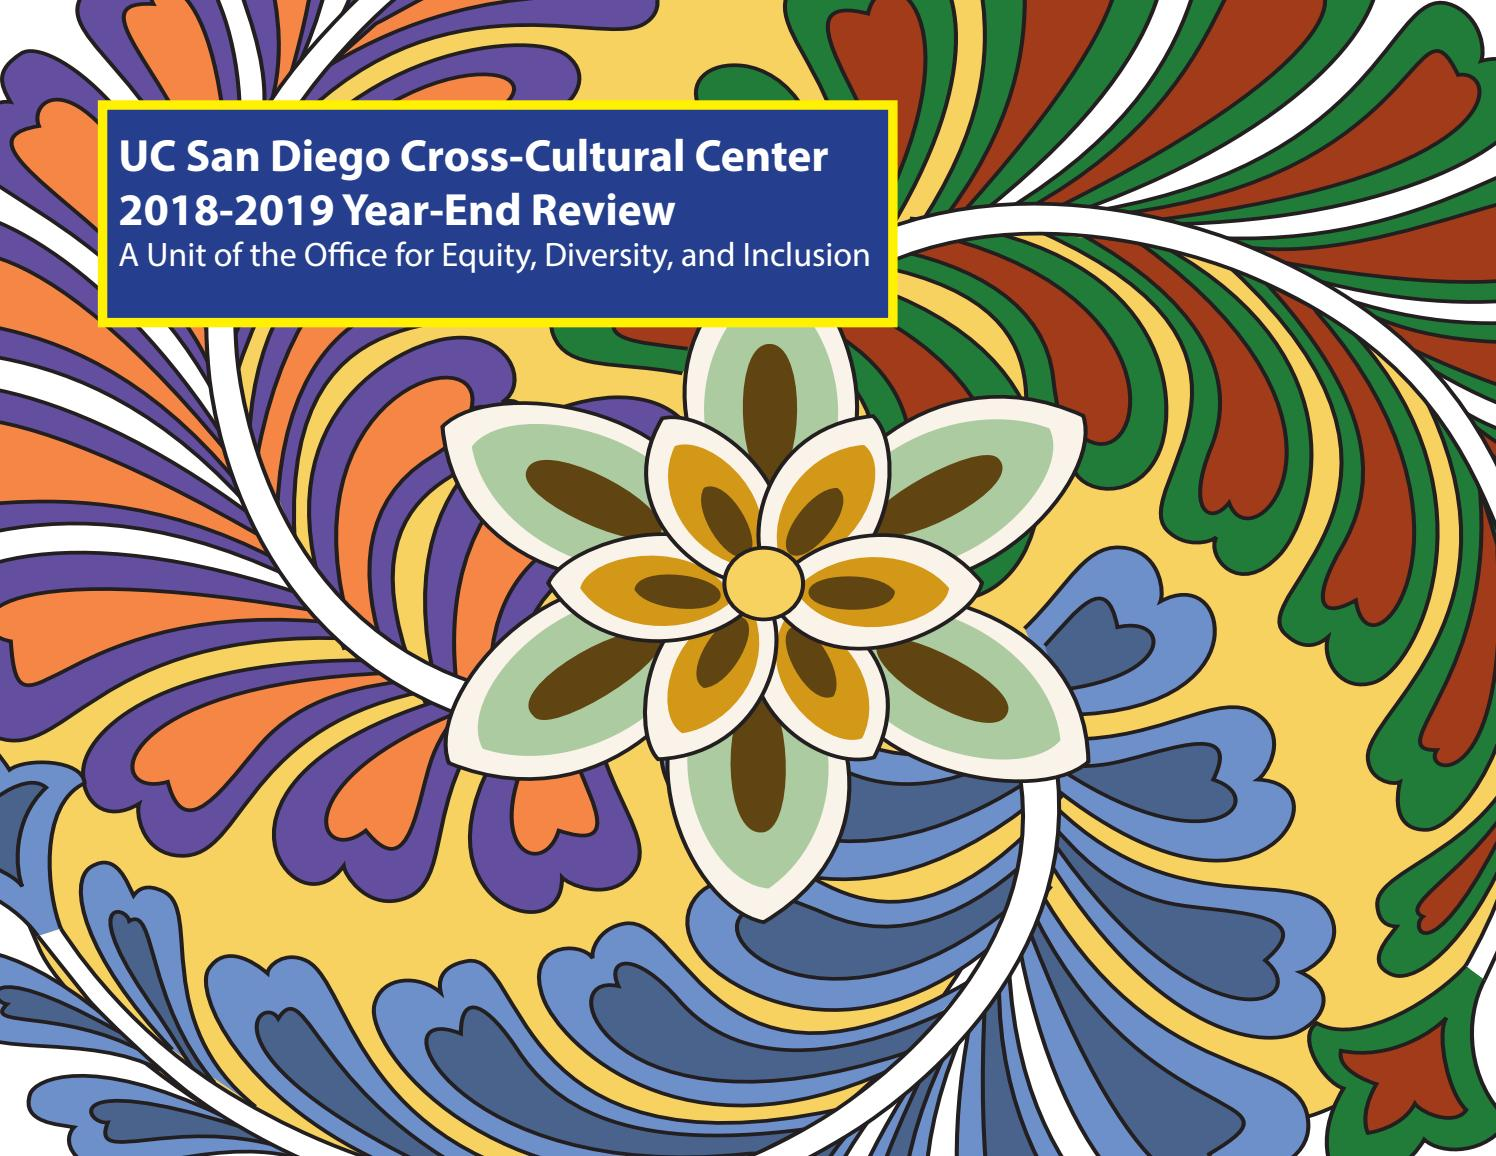 2018-2019 End Of Year Report By Cross-Cultural Center UCSD